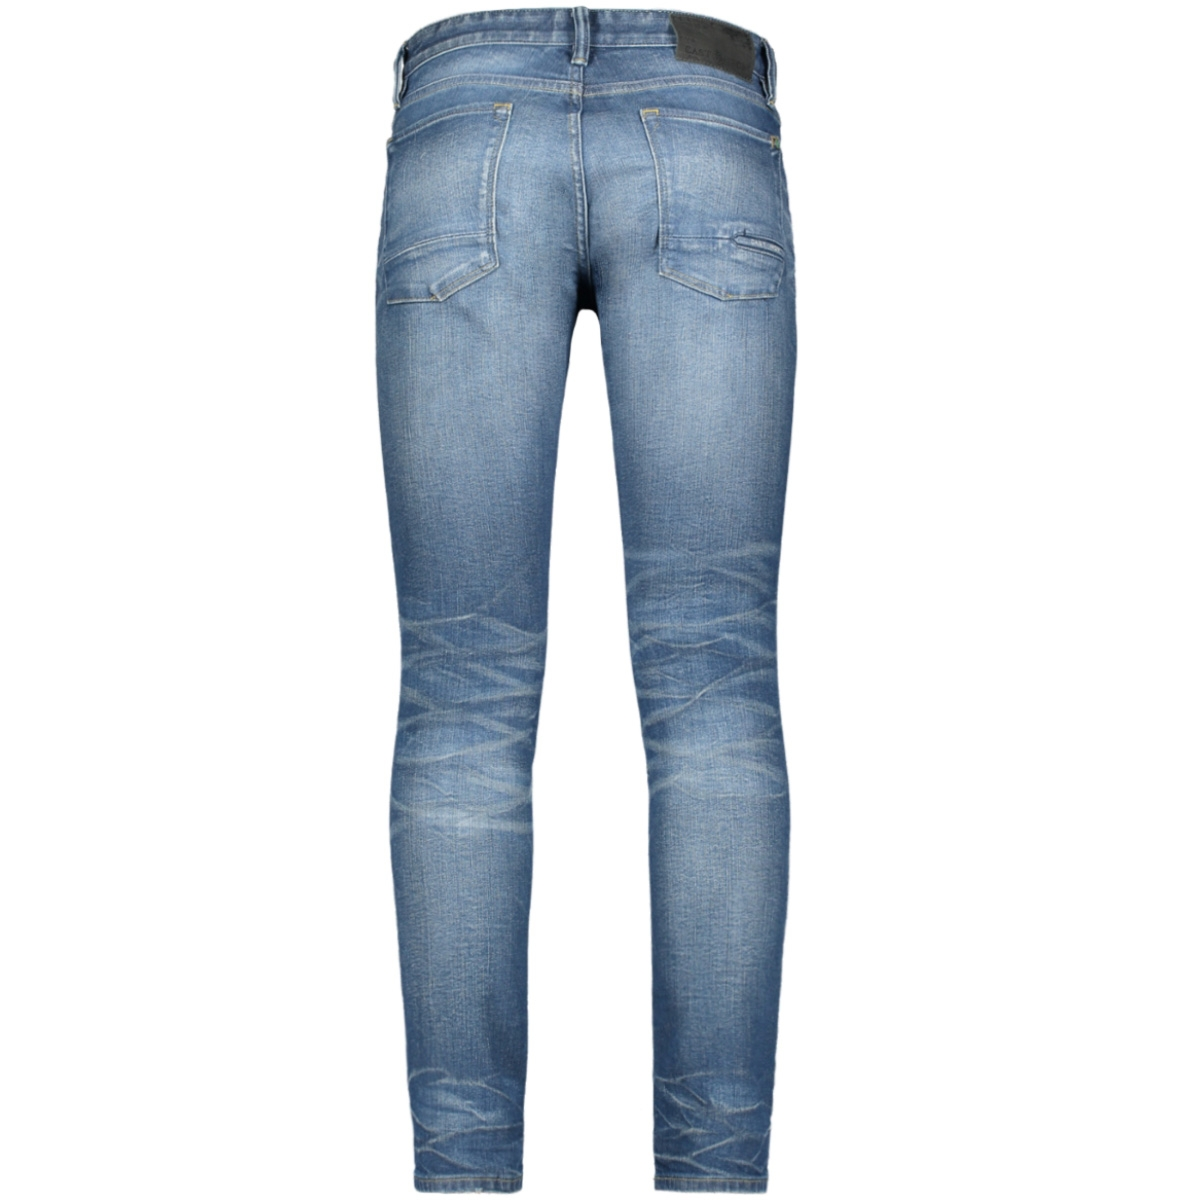 riser mid blue wash greencast ctr201216 mbw cast iron jeans mbw